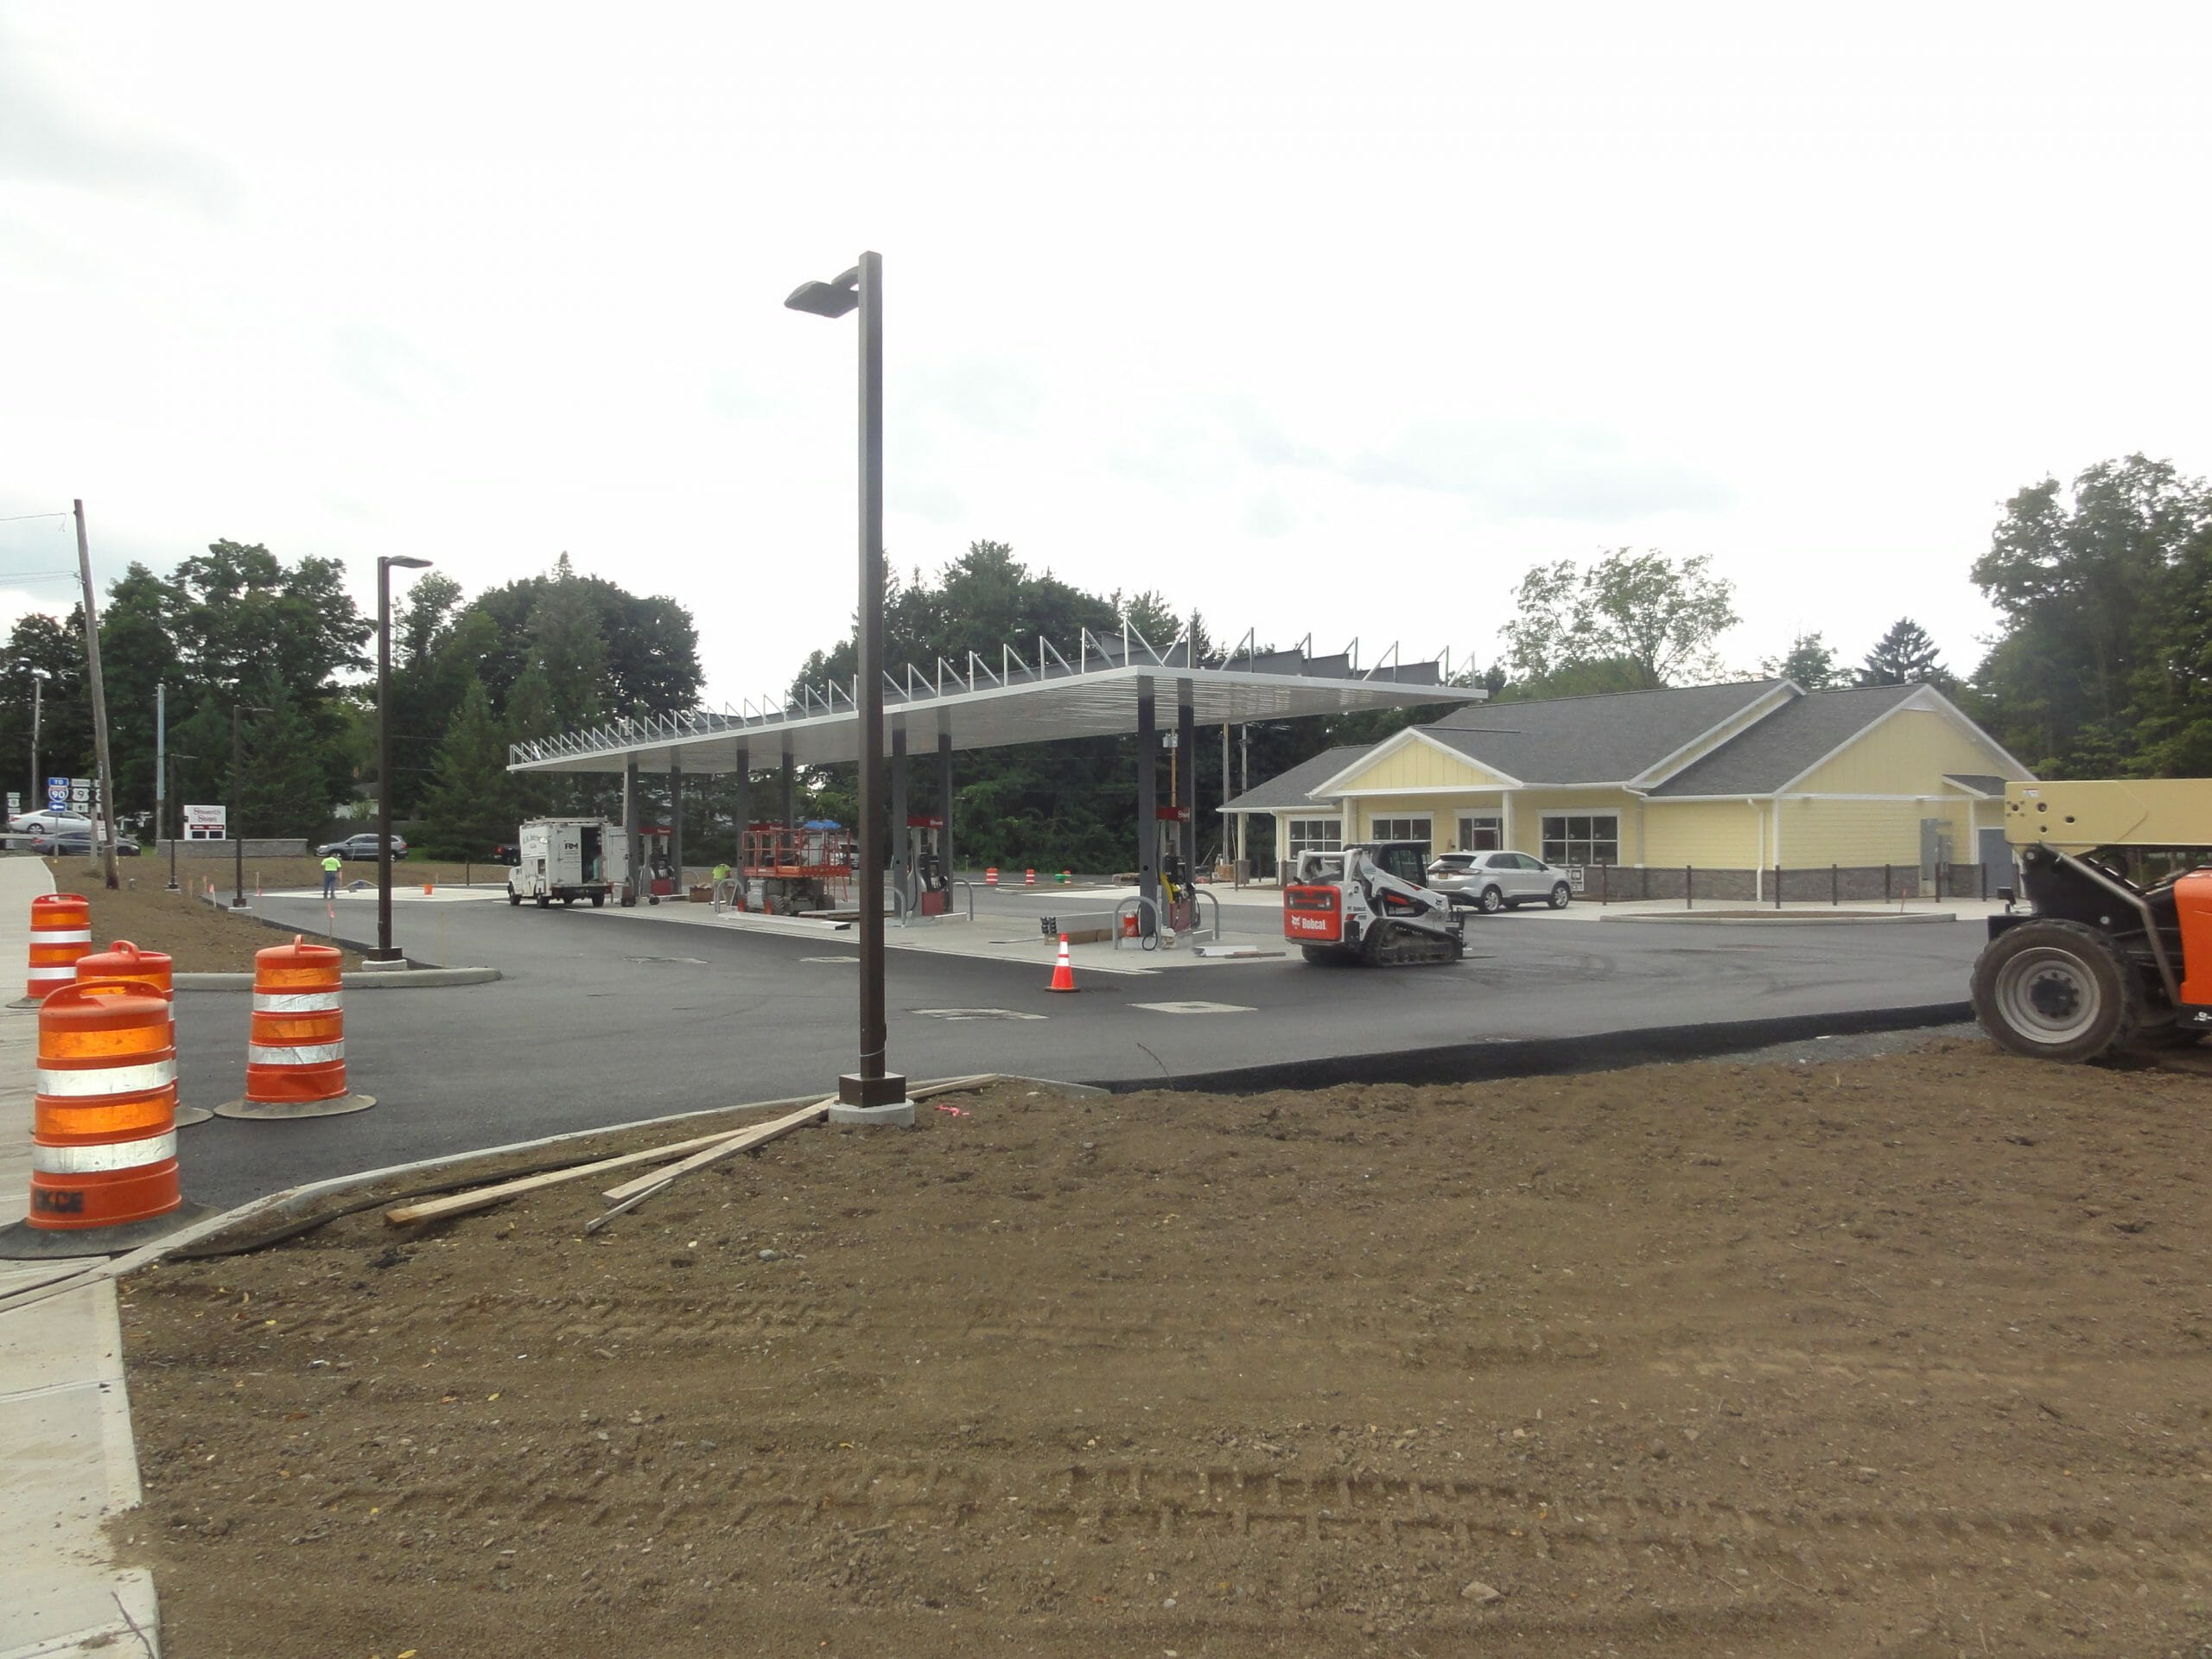 gas island being constructed in Schodack, NY